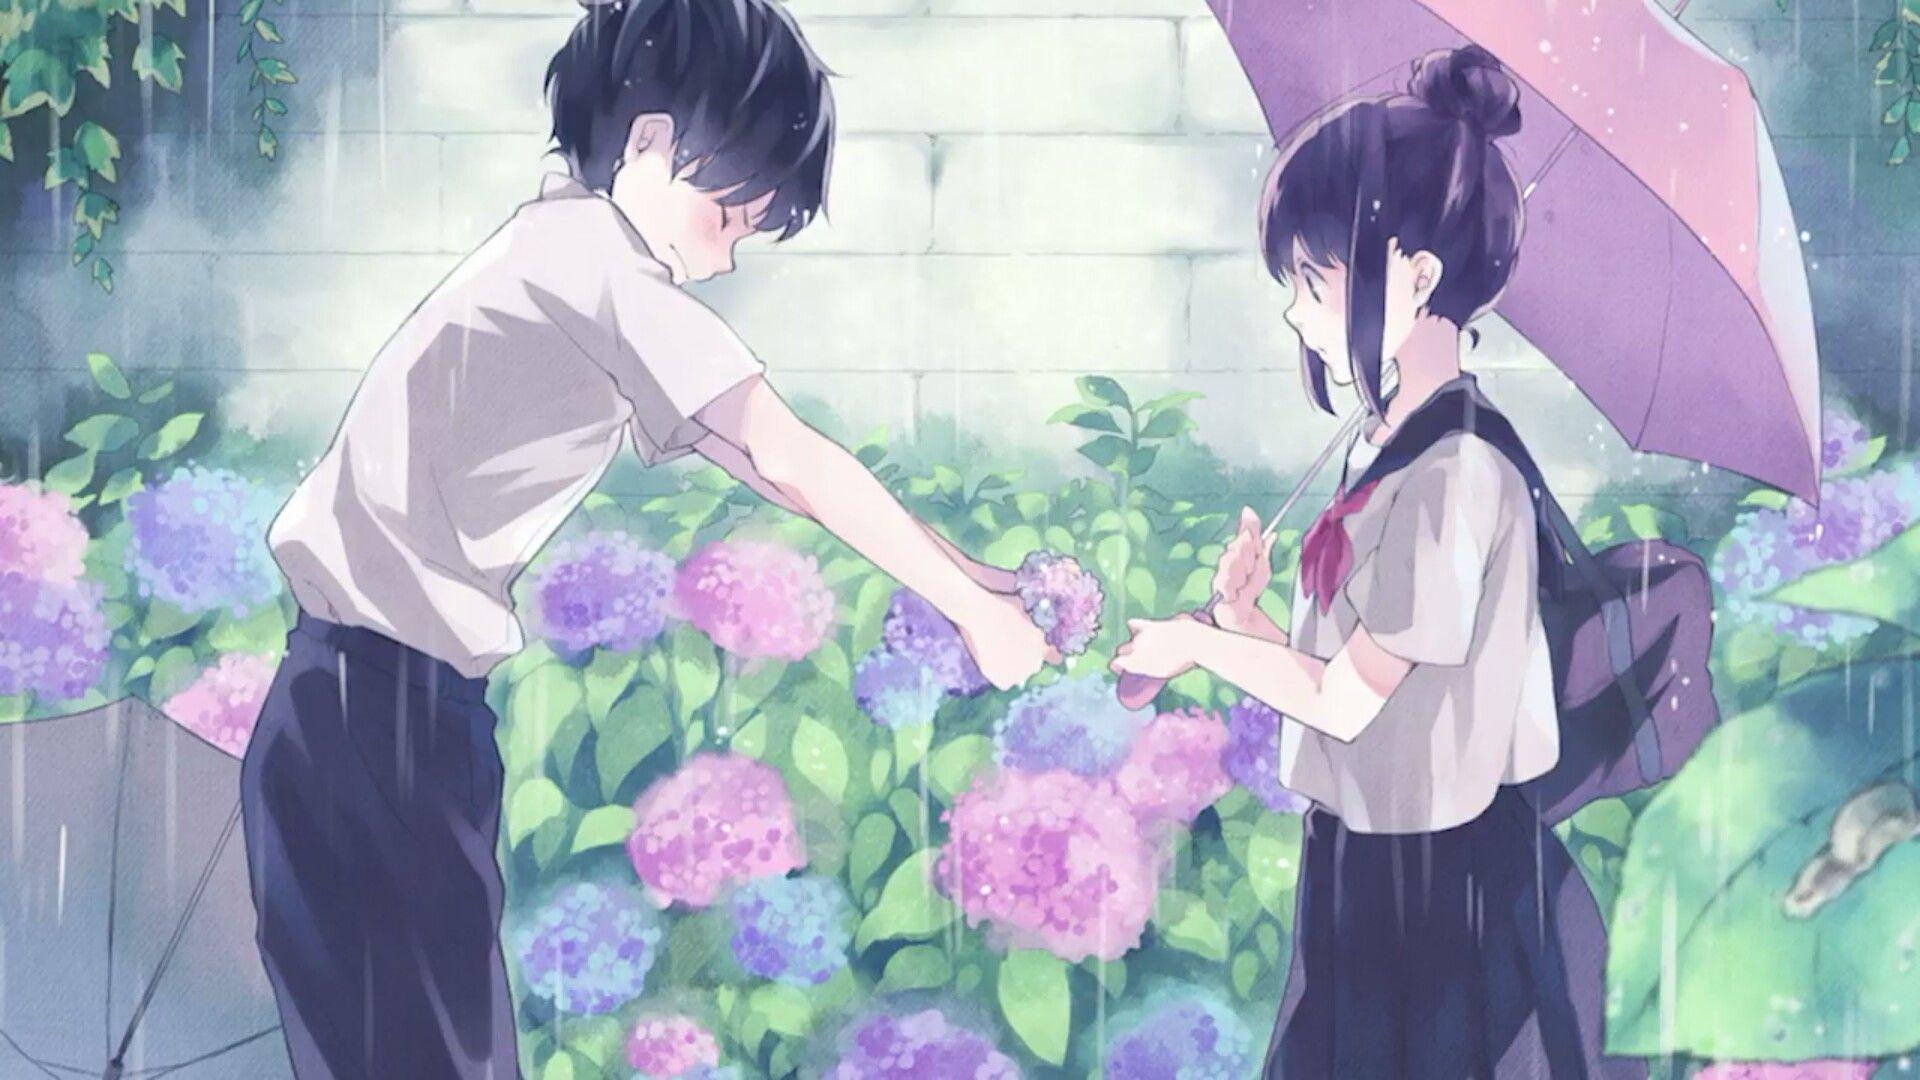 Anime boy giving flowers to girl wallpaper wallpaper studio 10